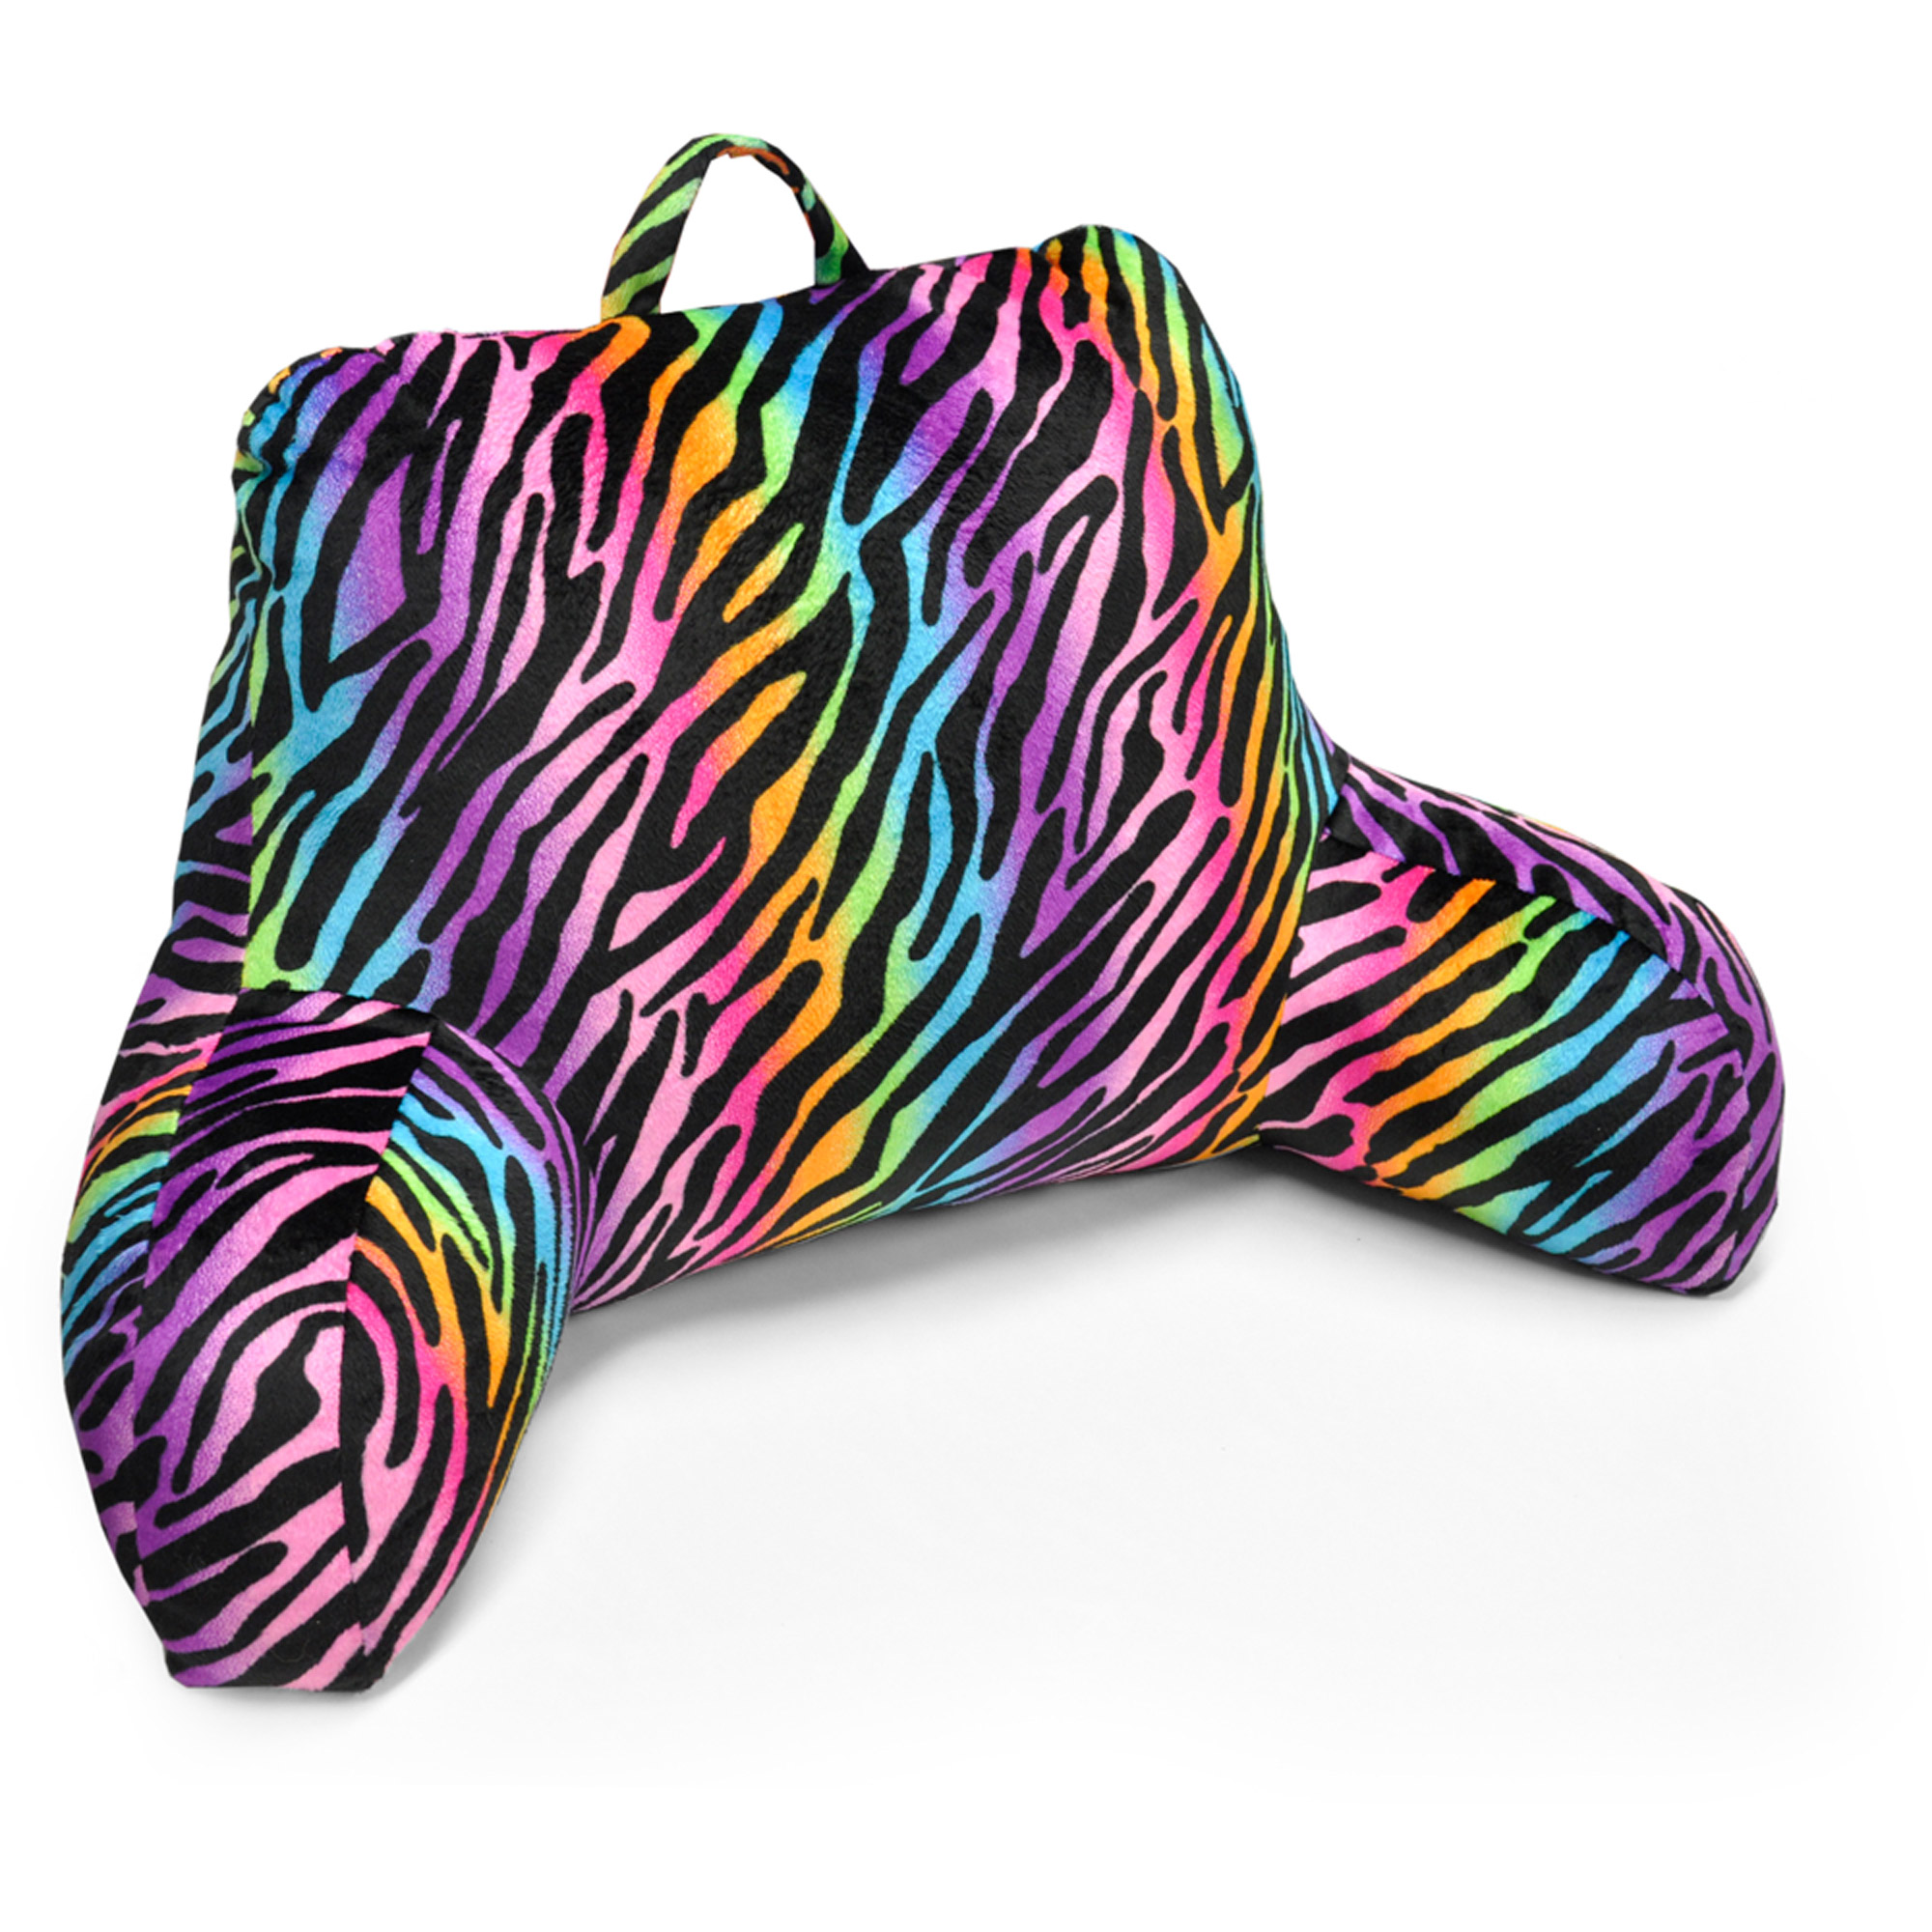 Alluring Backrest Pillow with Arms for Living Room Interior Ideas: Rainbow Animal Backrest Pillow With Arms Color